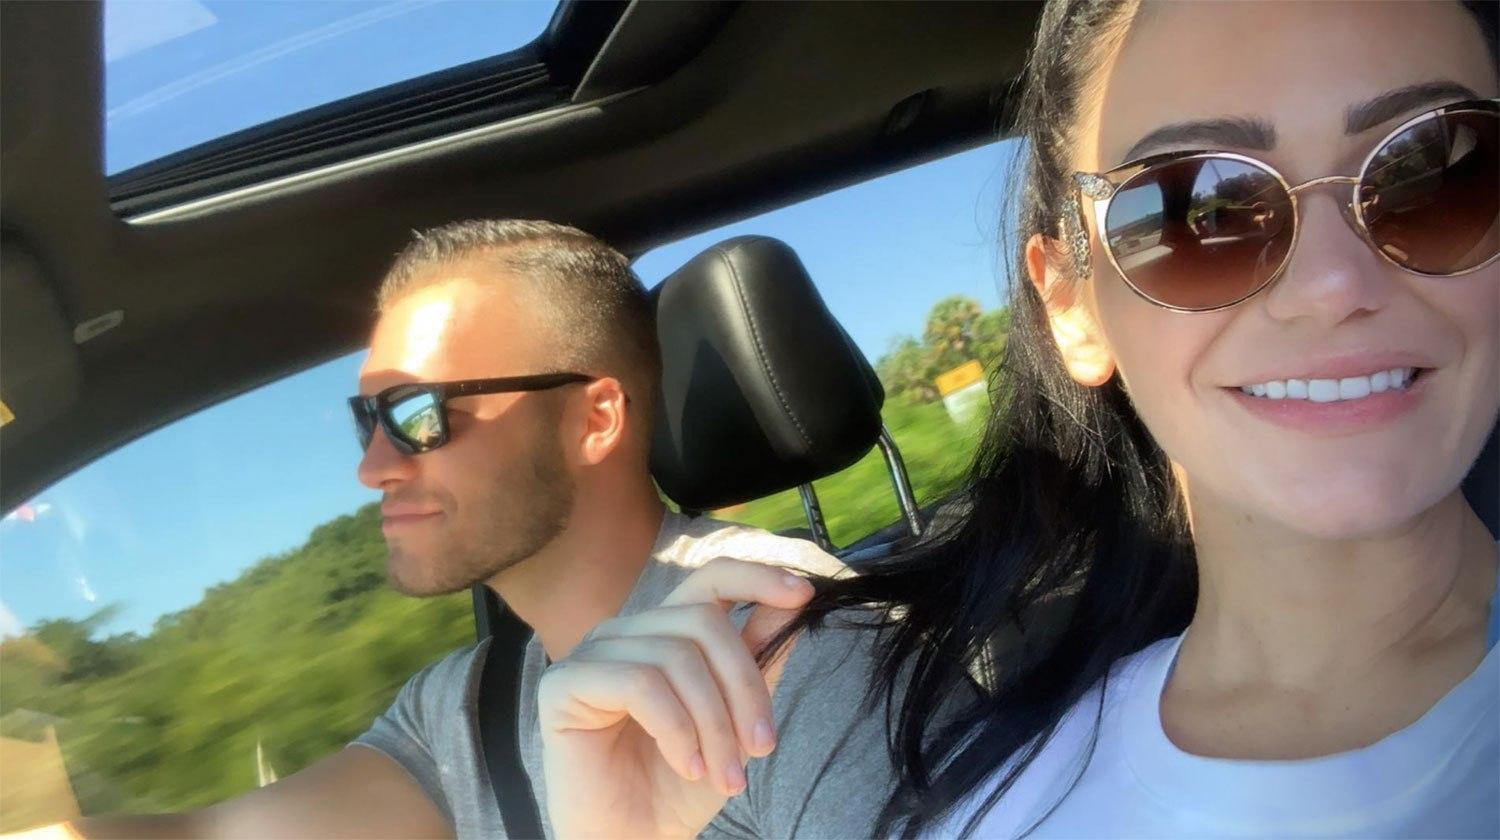 Heartbroken JWoww Dumps New Boyfriend After Watching Him Flirt With Co-Star